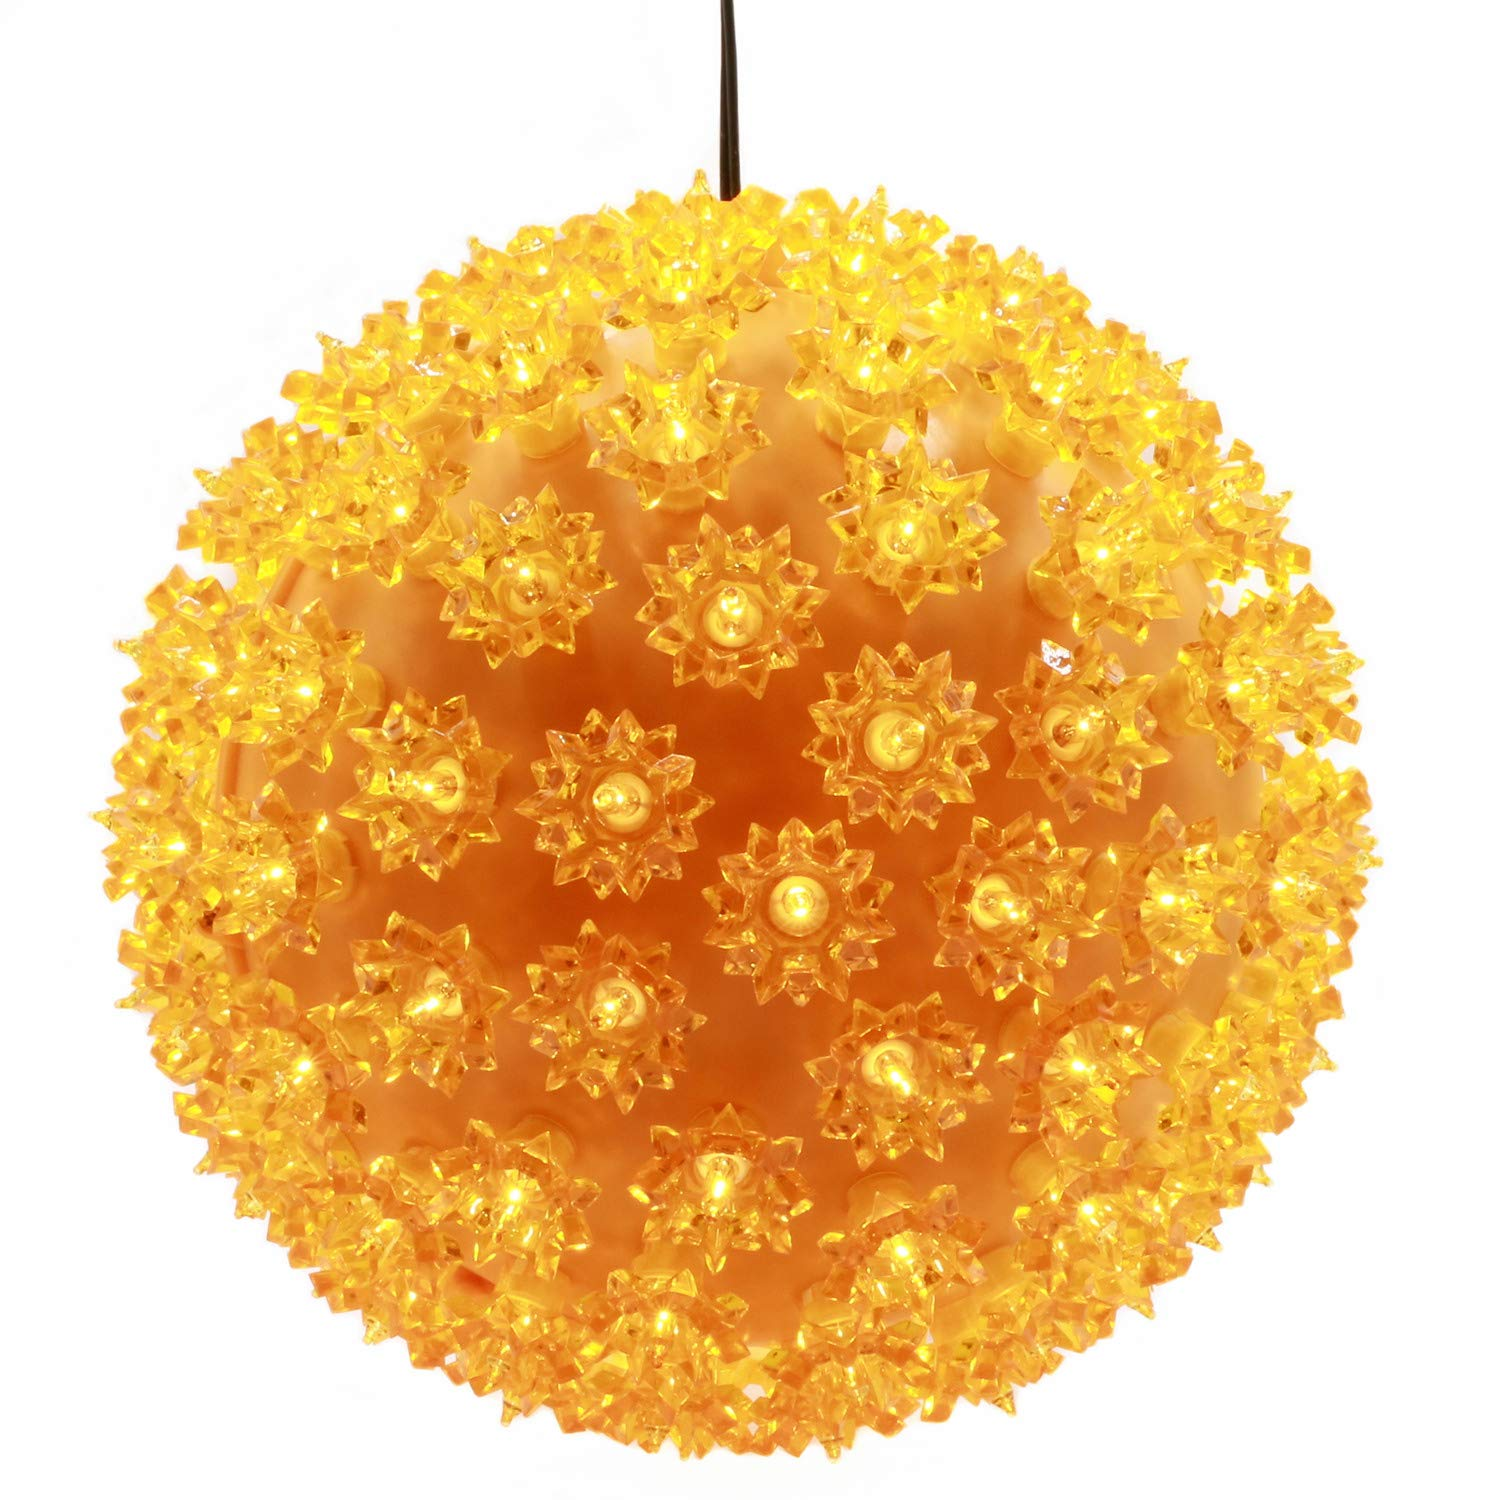 YULETIME 10'' Yellow Starlight Sphere Ball Lights, UL Certified Commercial Grade 150 Orange Lights Hanging Christmas Globe Light for Halloween Holiday Home Decor (10'' Yellow)